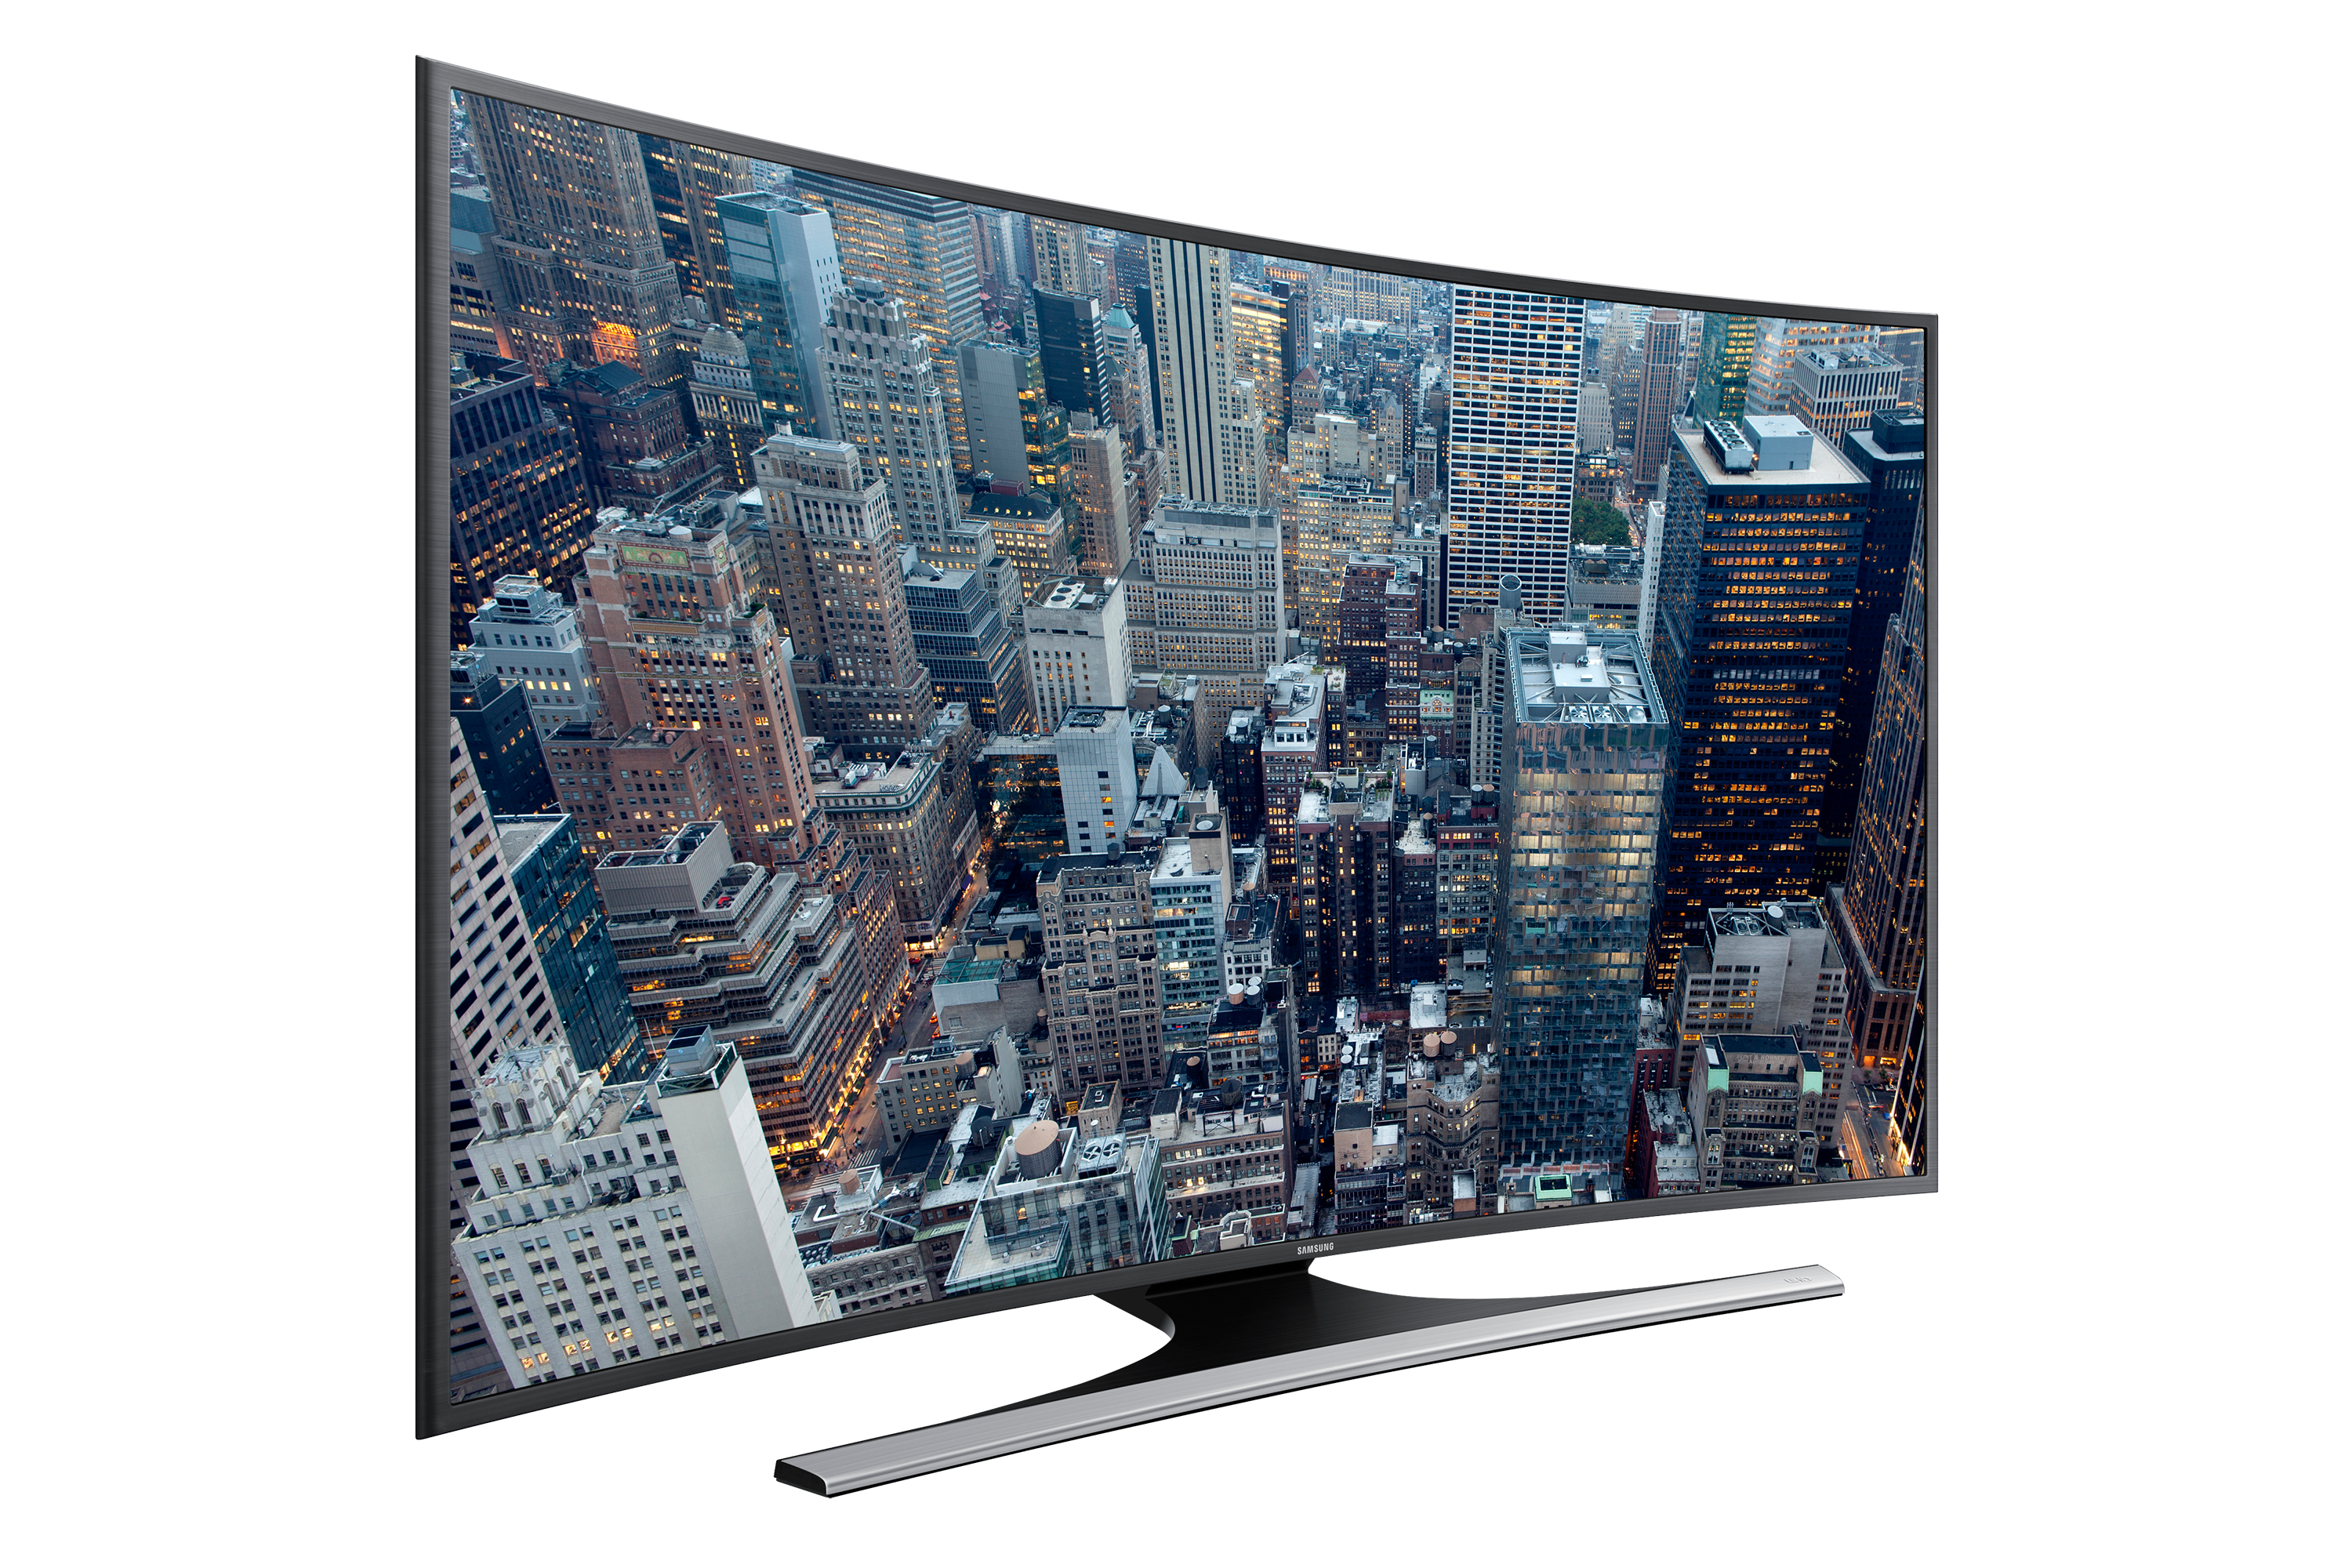 tv led 55 incurv uhd 4k smart tv ue55ju6500k samsung. Black Bedroom Furniture Sets. Home Design Ideas